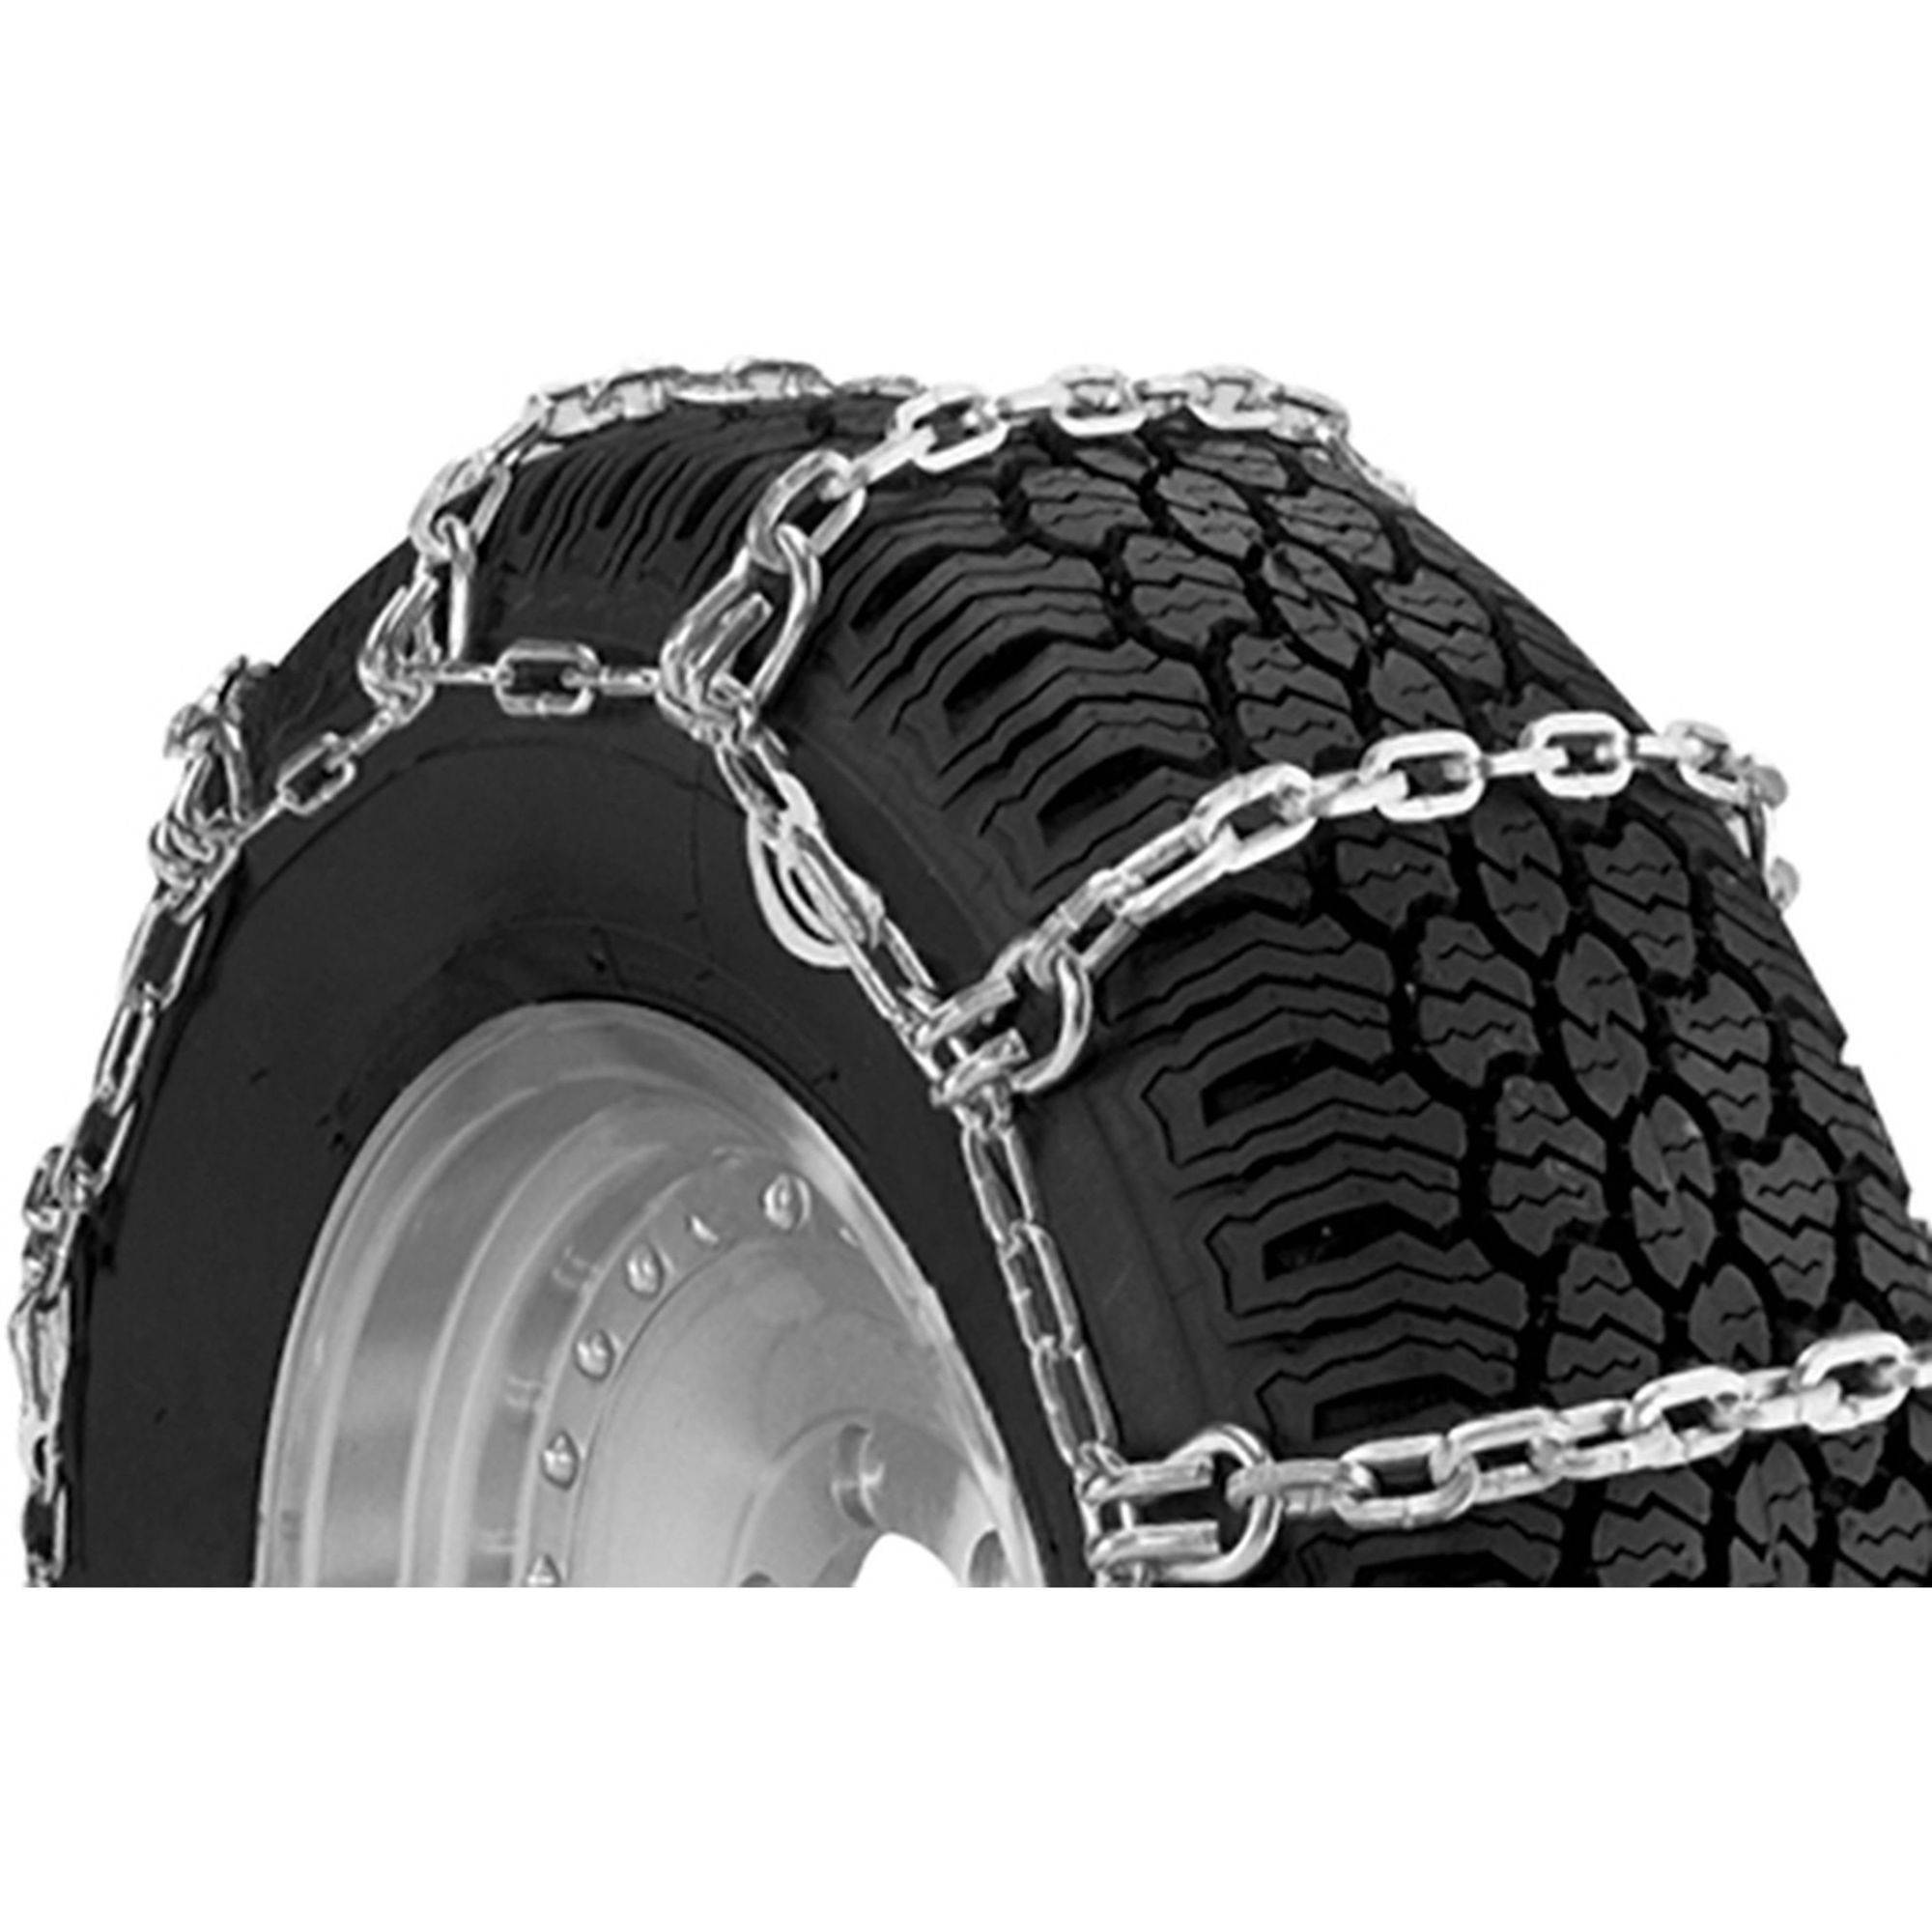 Square Link Alloy Truck Chains with Camlock